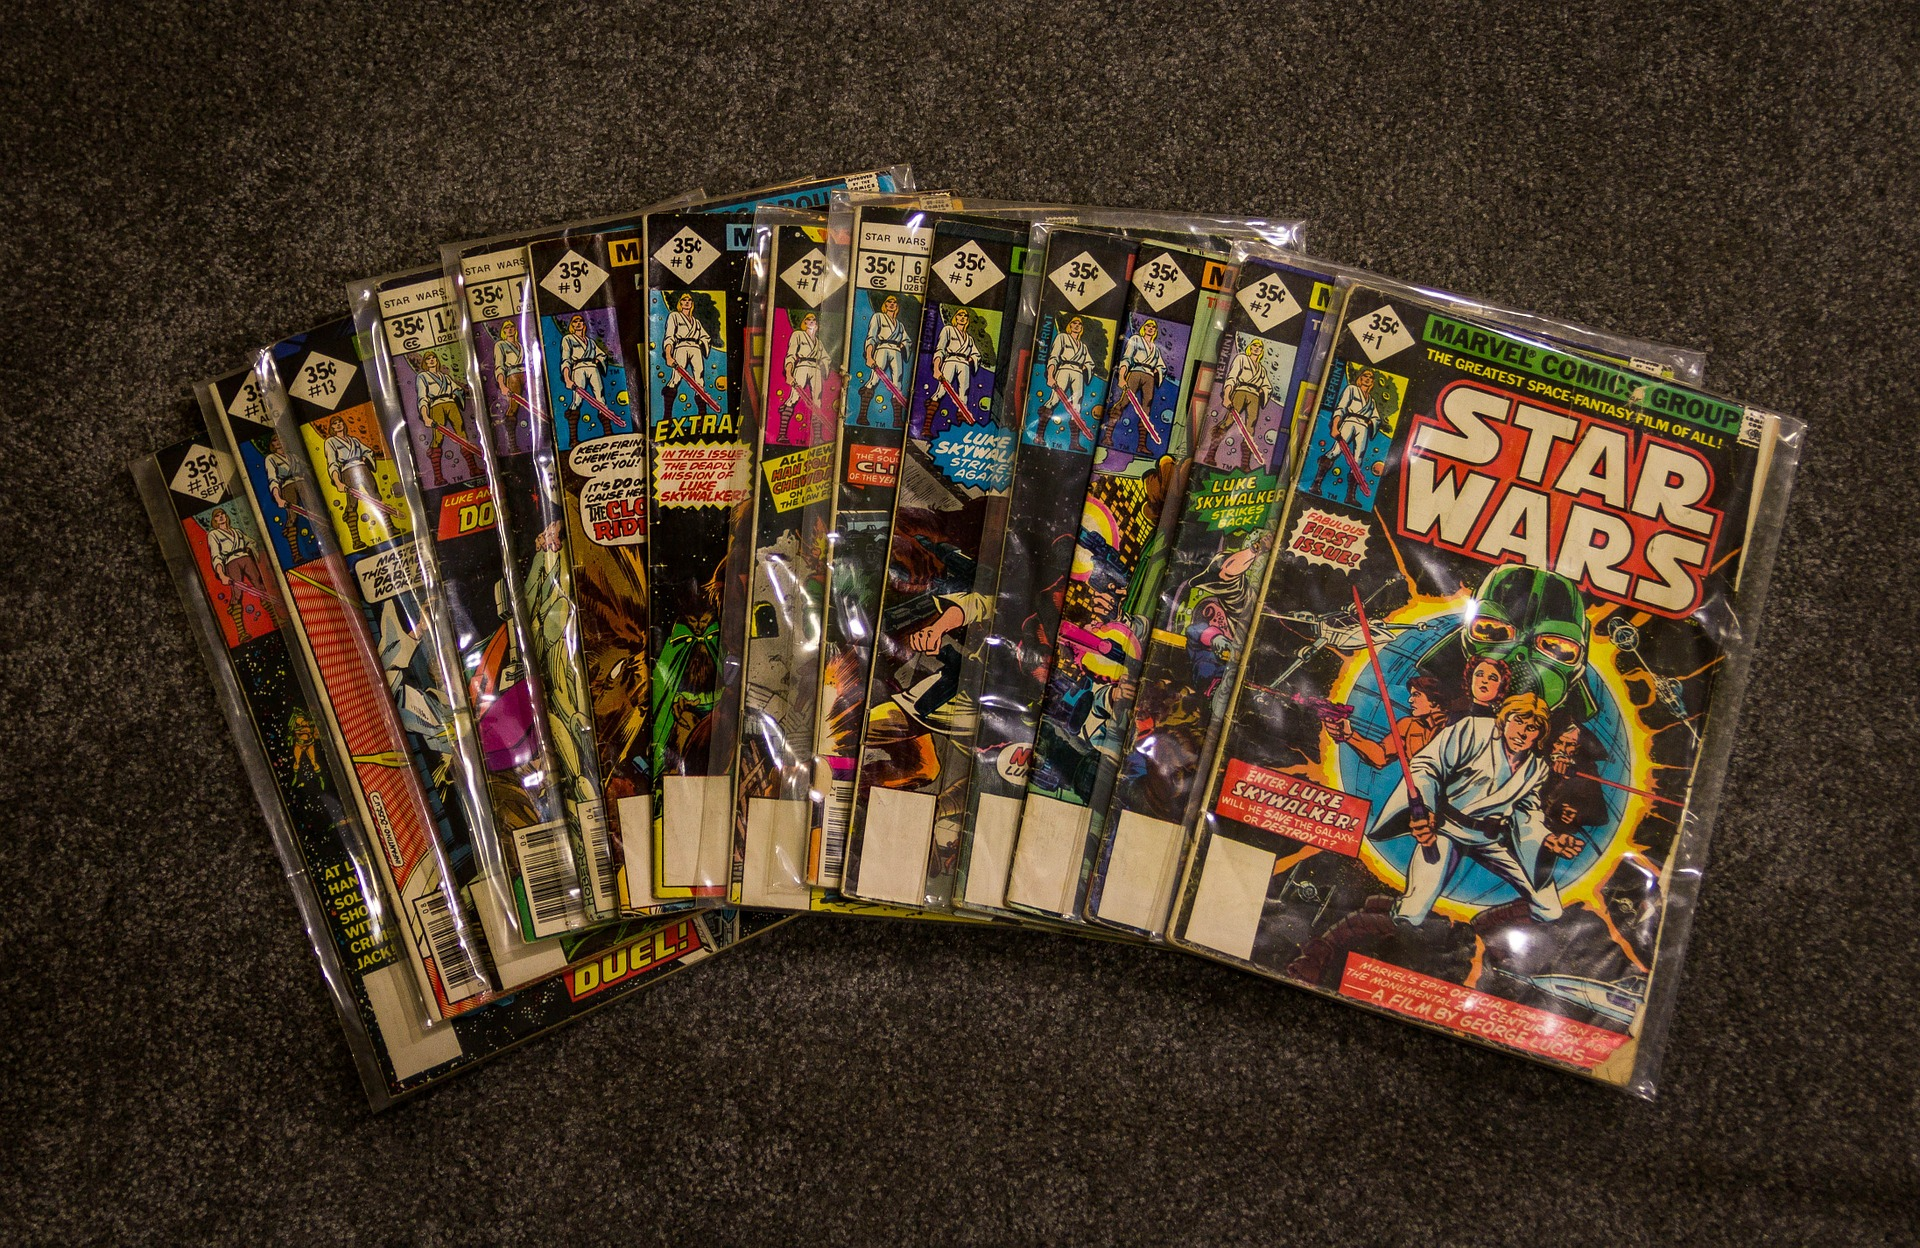 comic-books-382534_1920.jpg